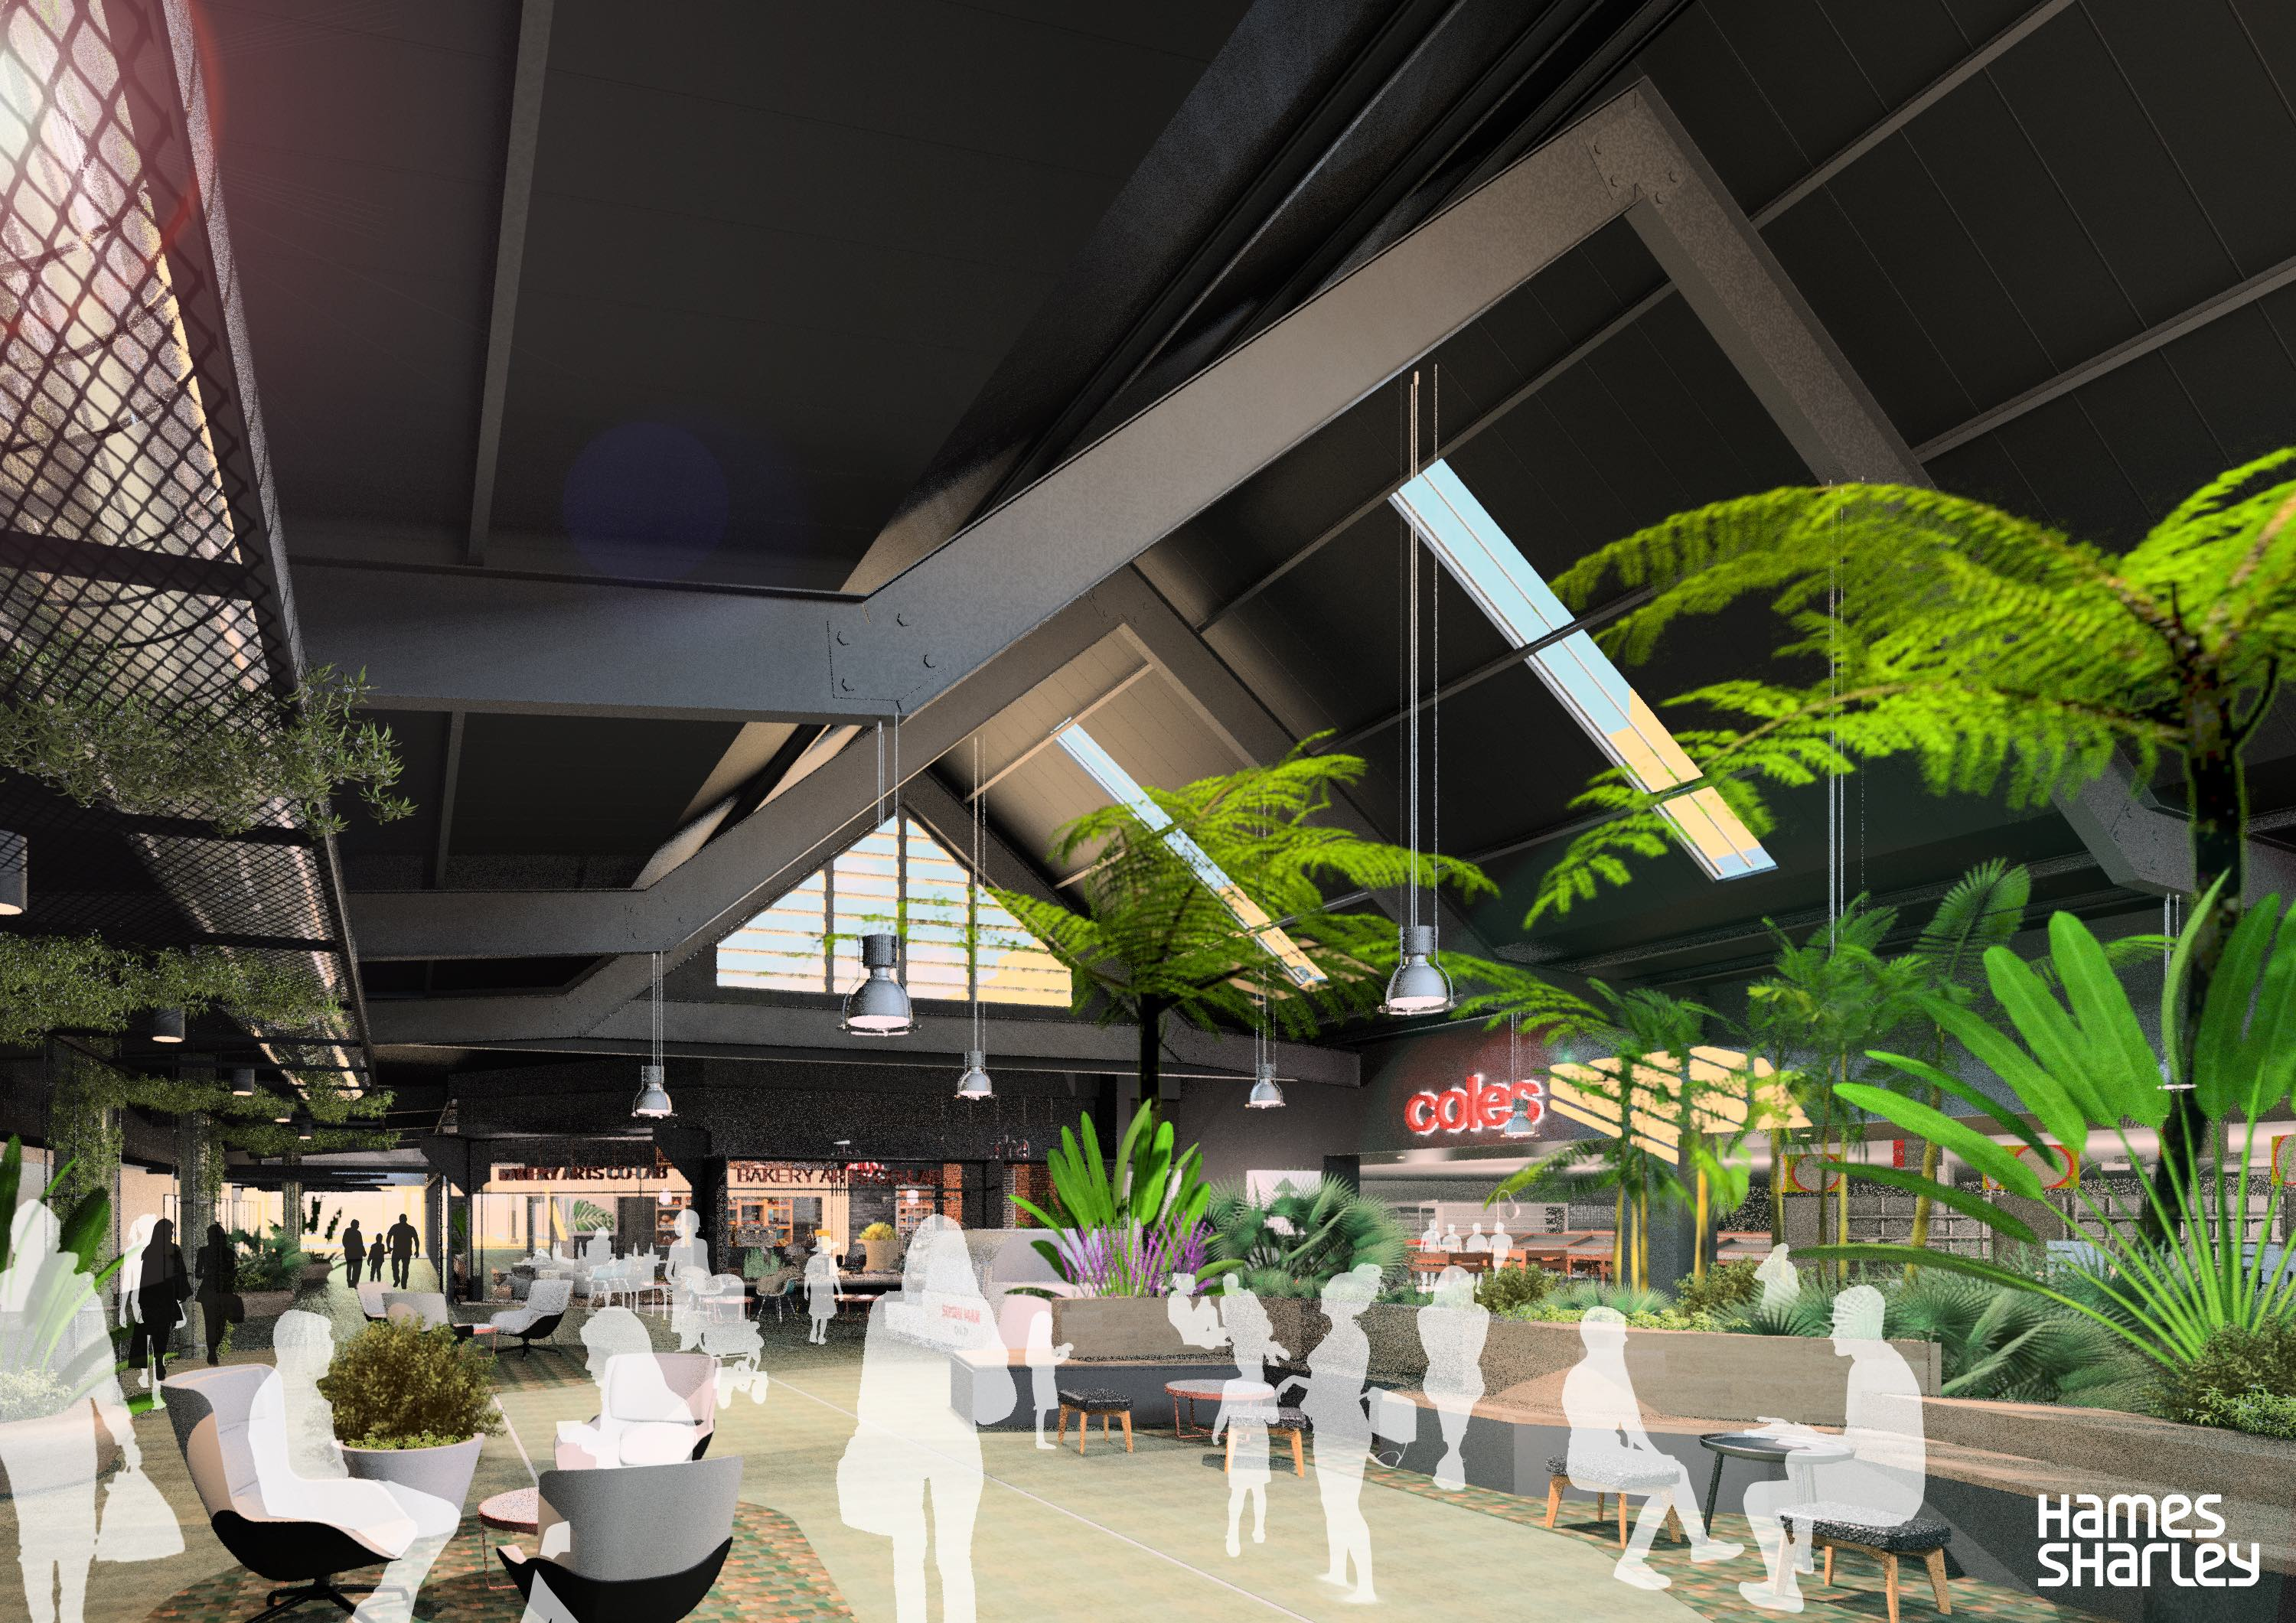 Degani Cafe in new development at Albany Creek Shopping Centre. Will look great!